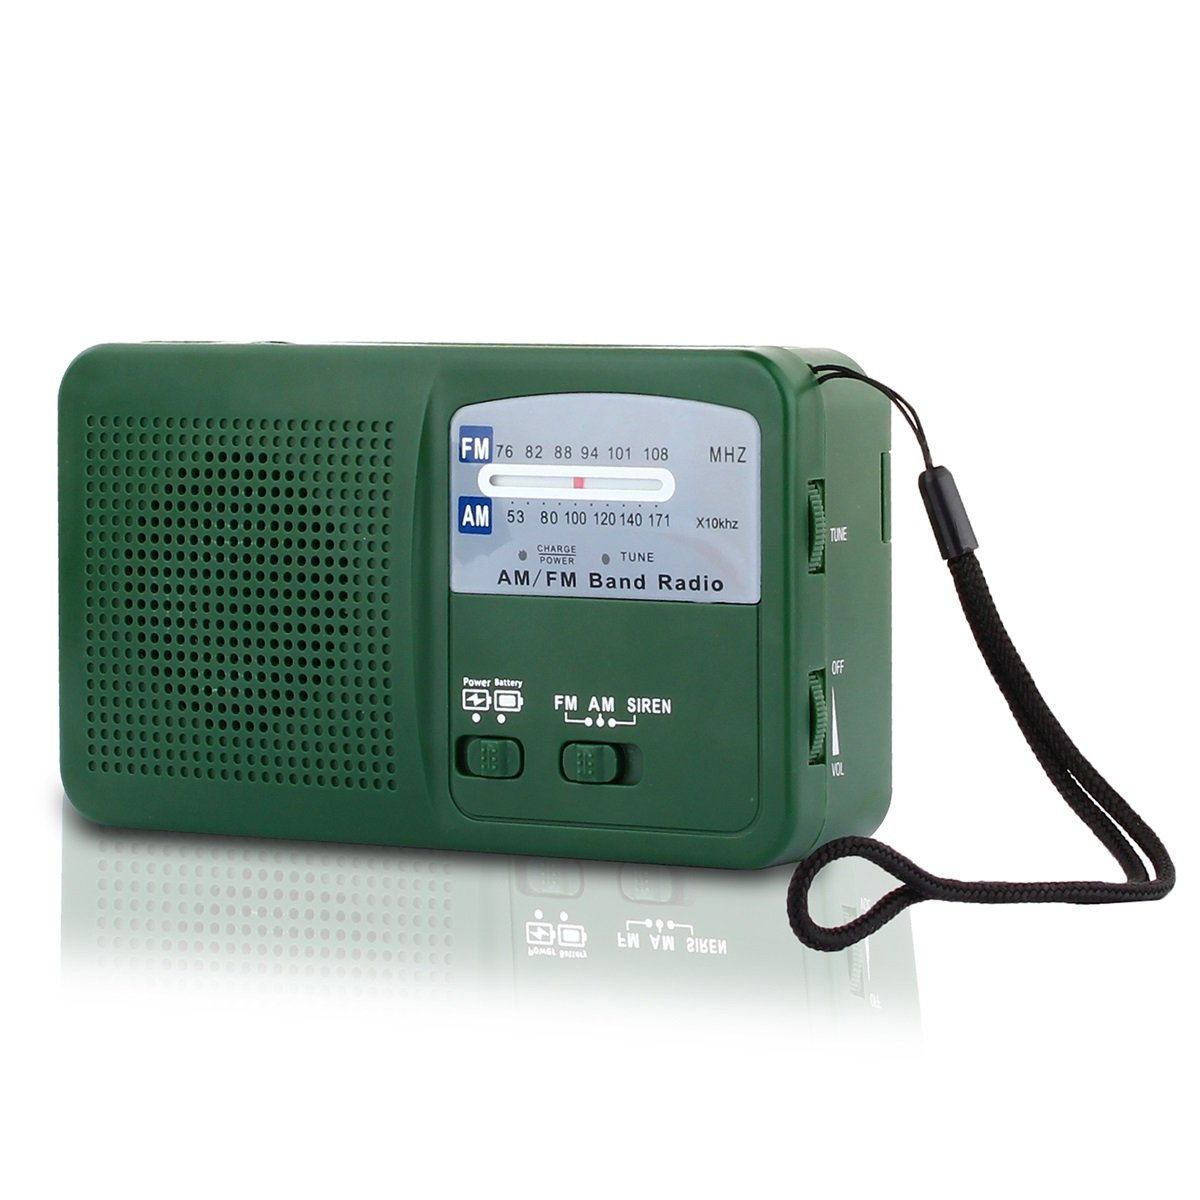 Emergency Radio with Solar and Hand Crank Self Powered, Battery USB Recharging FM/AM Radio LED Flashlight Cell Phone Charger(Green) Hoshine